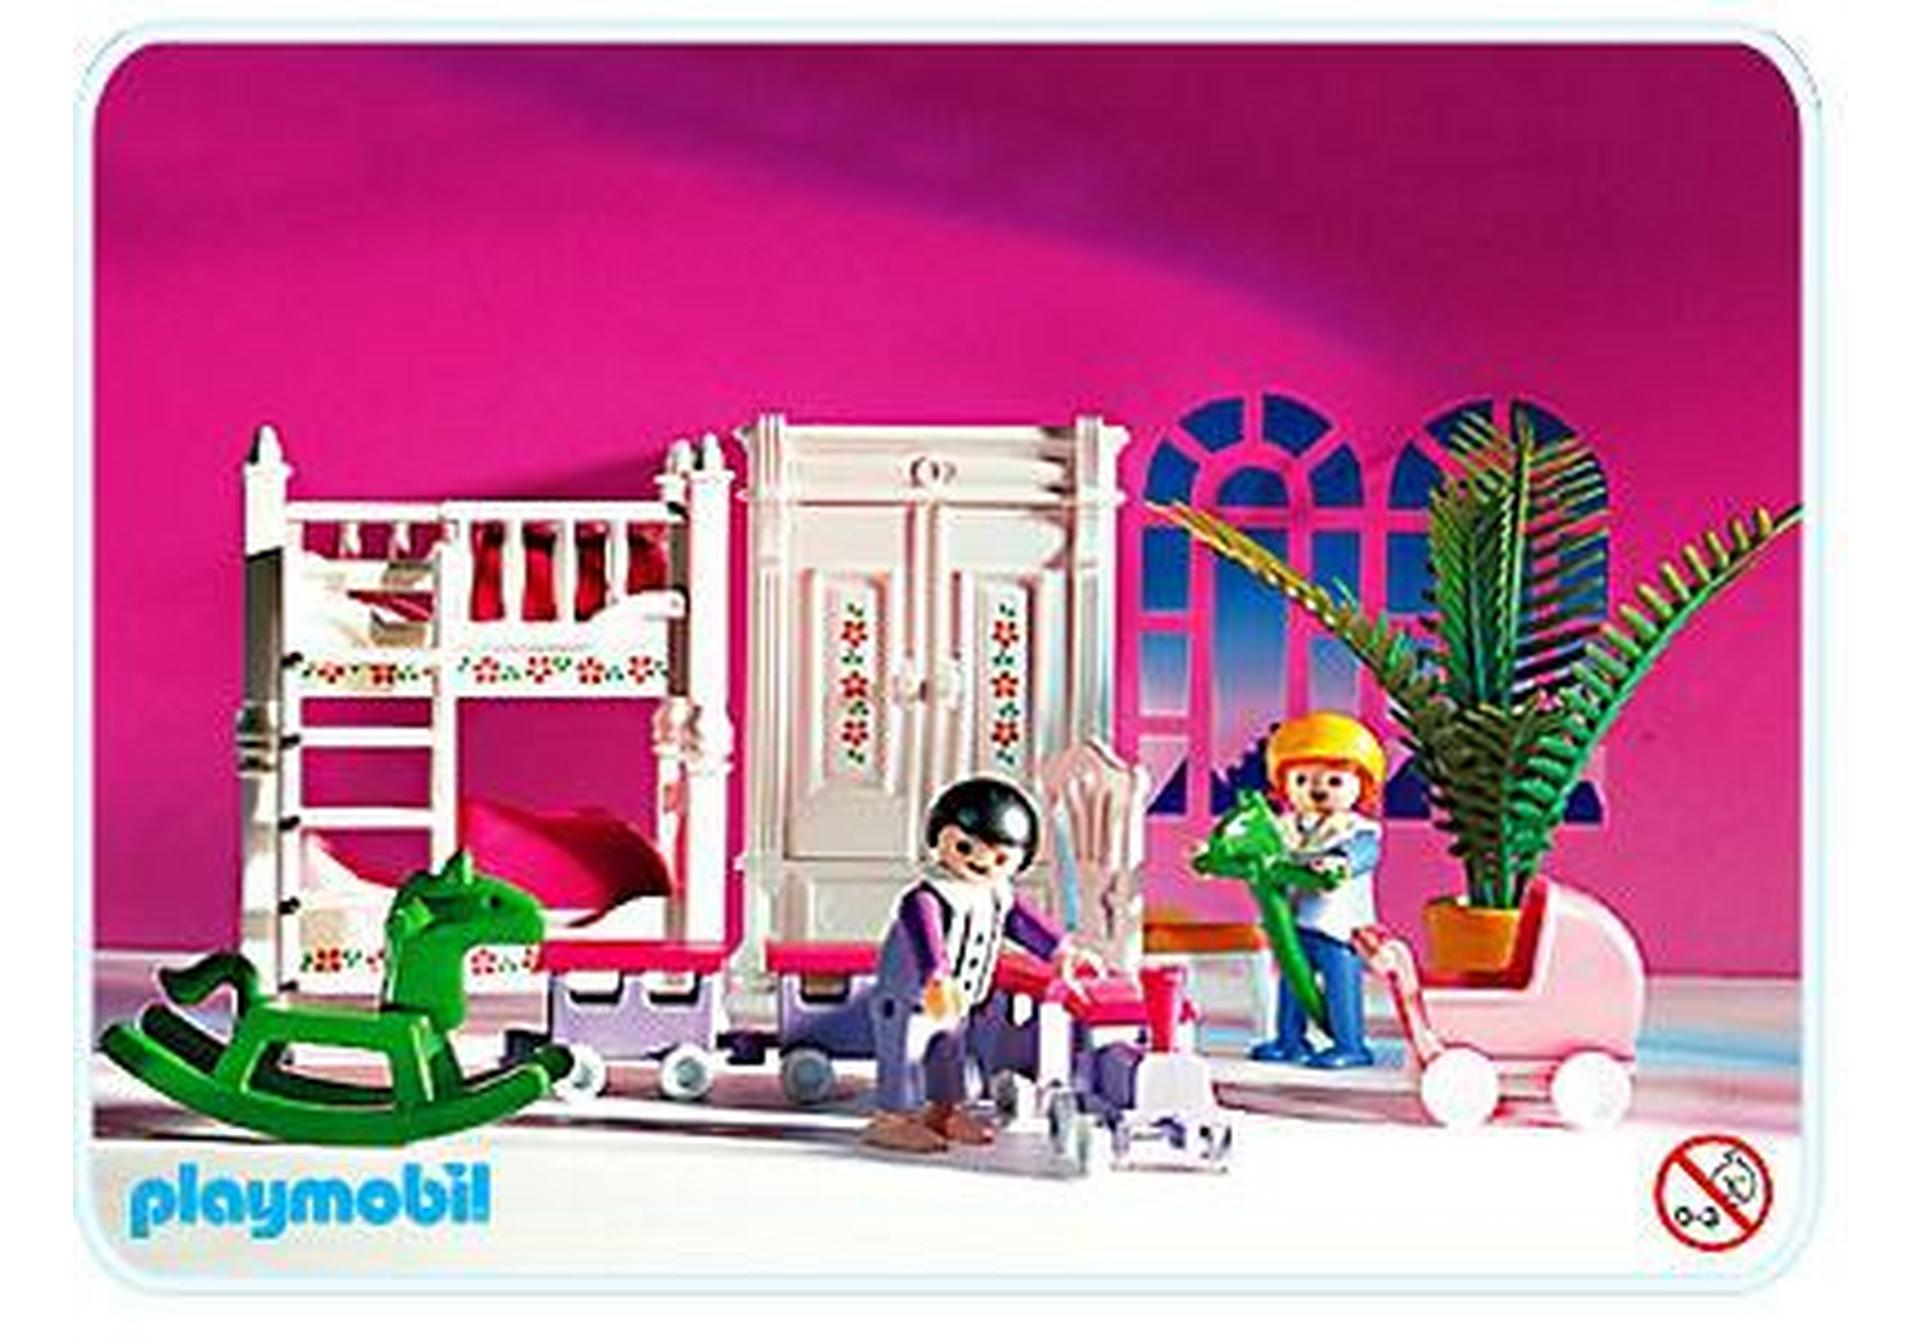 Kinderzimmer mit stockbetten 5312 a playmobil for Chambre playmobil